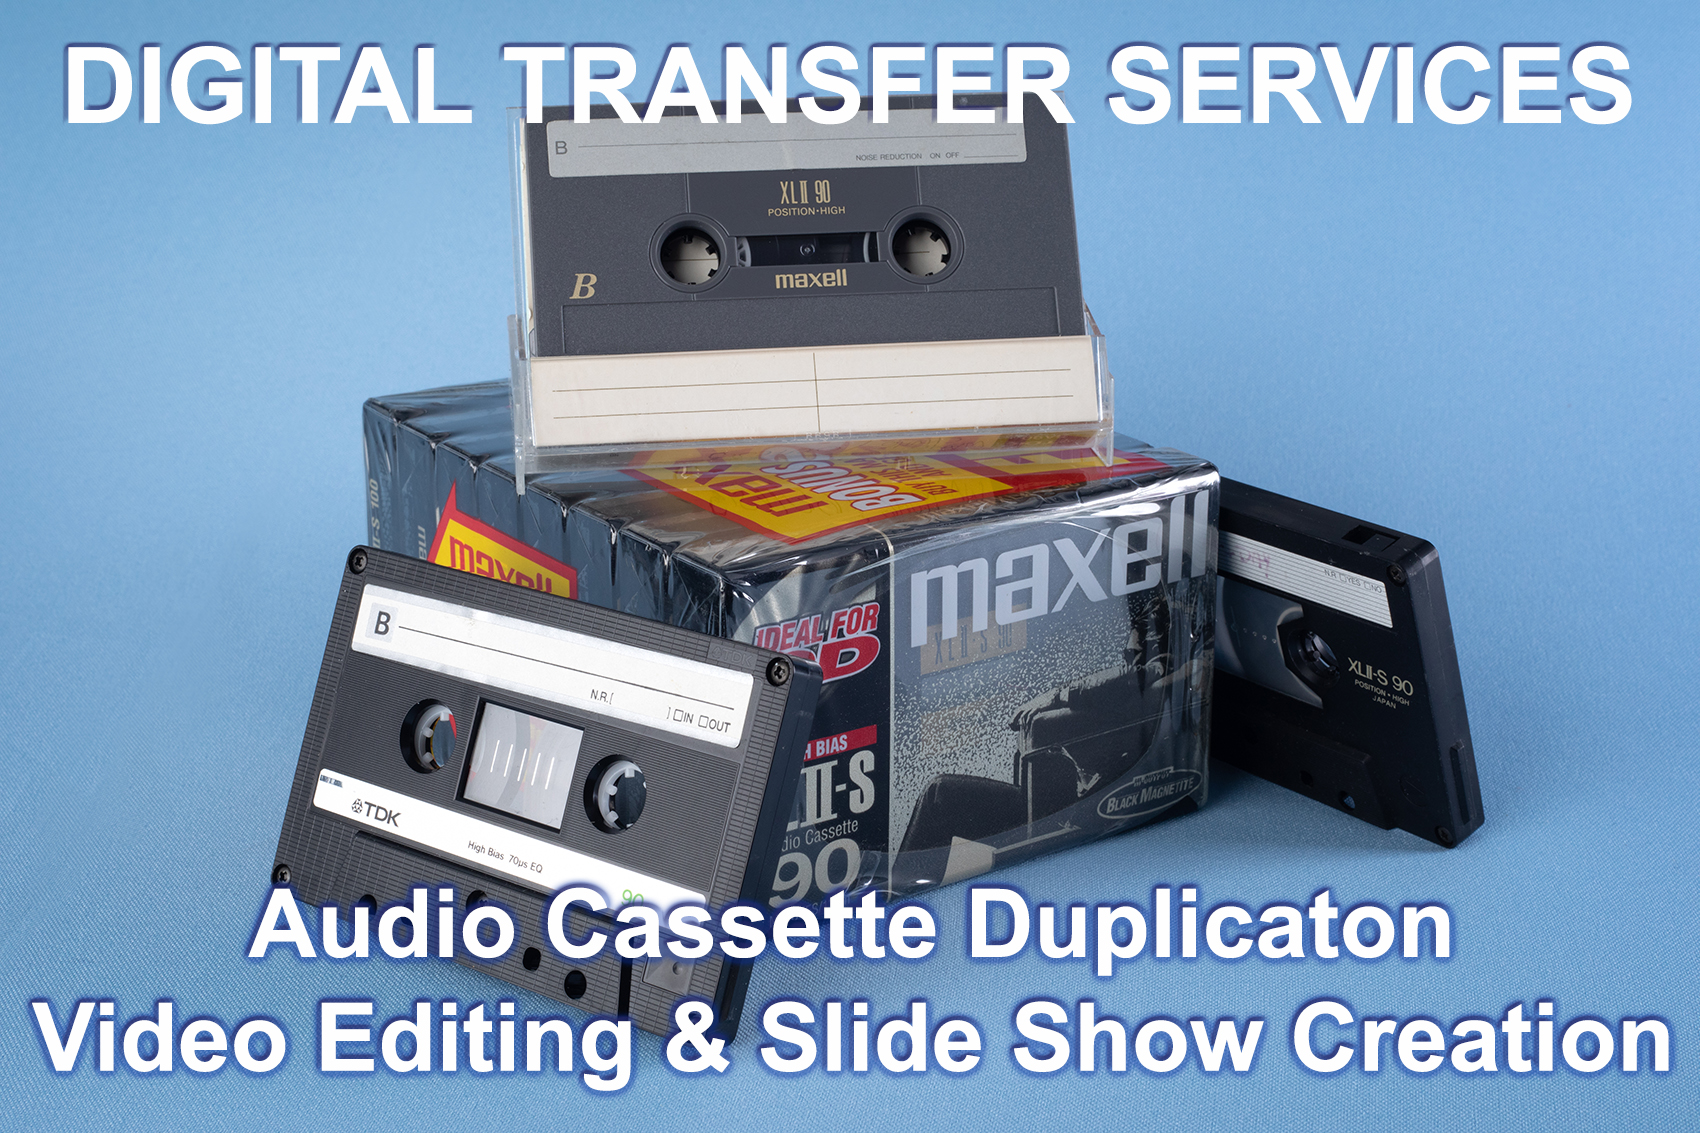 Digital Transfer Service - Audio Cassette duplication Video editing, Slide Show Creation to video